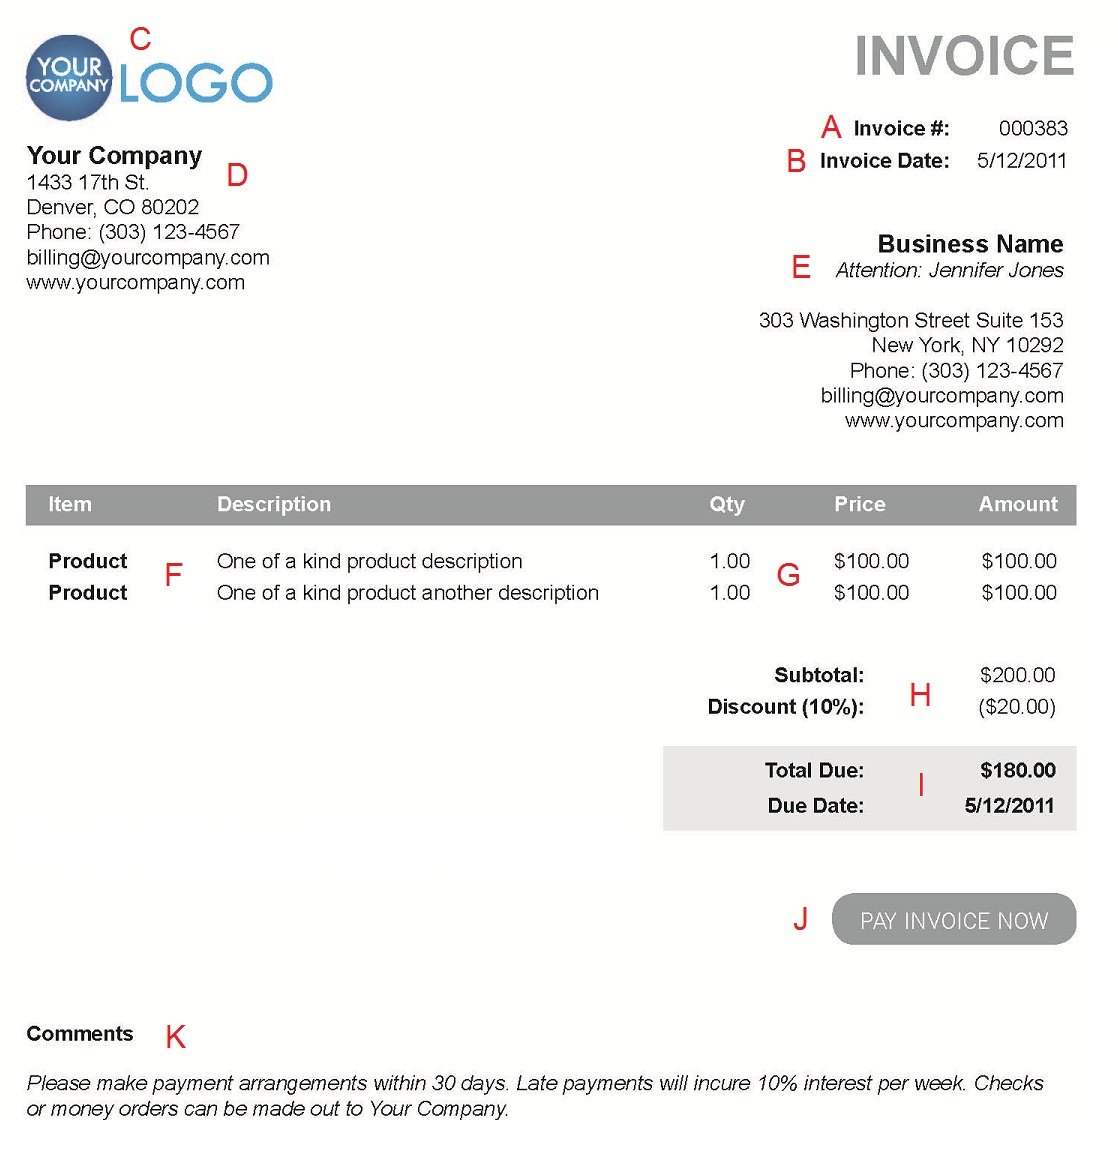 Coolmathgamesus  Unique The  Different Sections Of An Electronic Payment Invoice With Glamorous A  With Attractive Donation Invoice Template Also Invoice Price For New Cars In Addition Examples Of An Invoice And Example Invoices As Well As Paypal Invoice Buyer Protection Additionally Invoice Approval Workflow From Paysimplecom With Coolmathgamesus  Glamorous The  Different Sections Of An Electronic Payment Invoice With Attractive A  And Unique Donation Invoice Template Also Invoice Price For New Cars In Addition Examples Of An Invoice From Paysimplecom